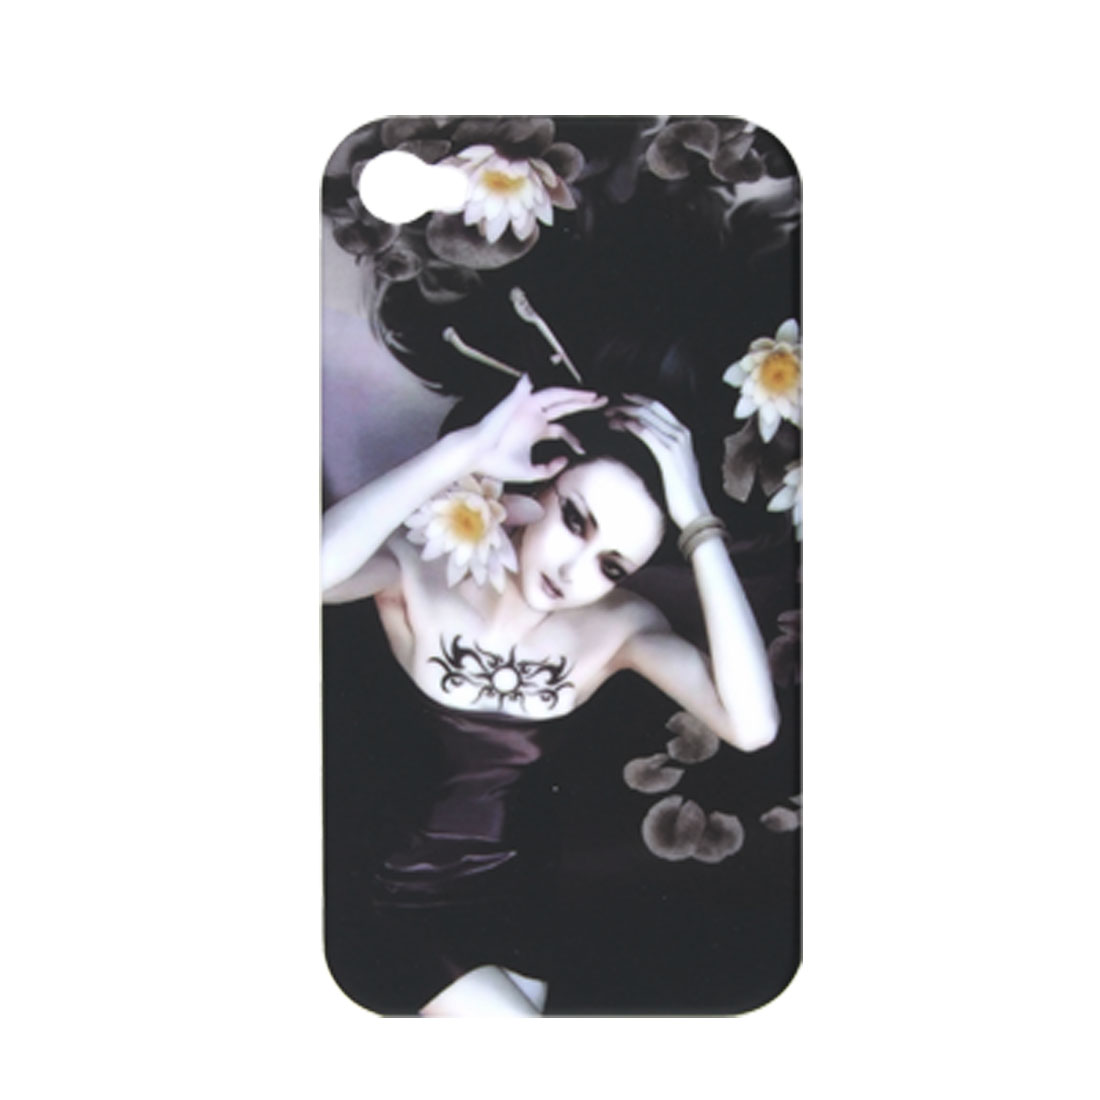 Peony Tattoo Girl Hard Plastic Rubberized Cover for iPhone 4 4G